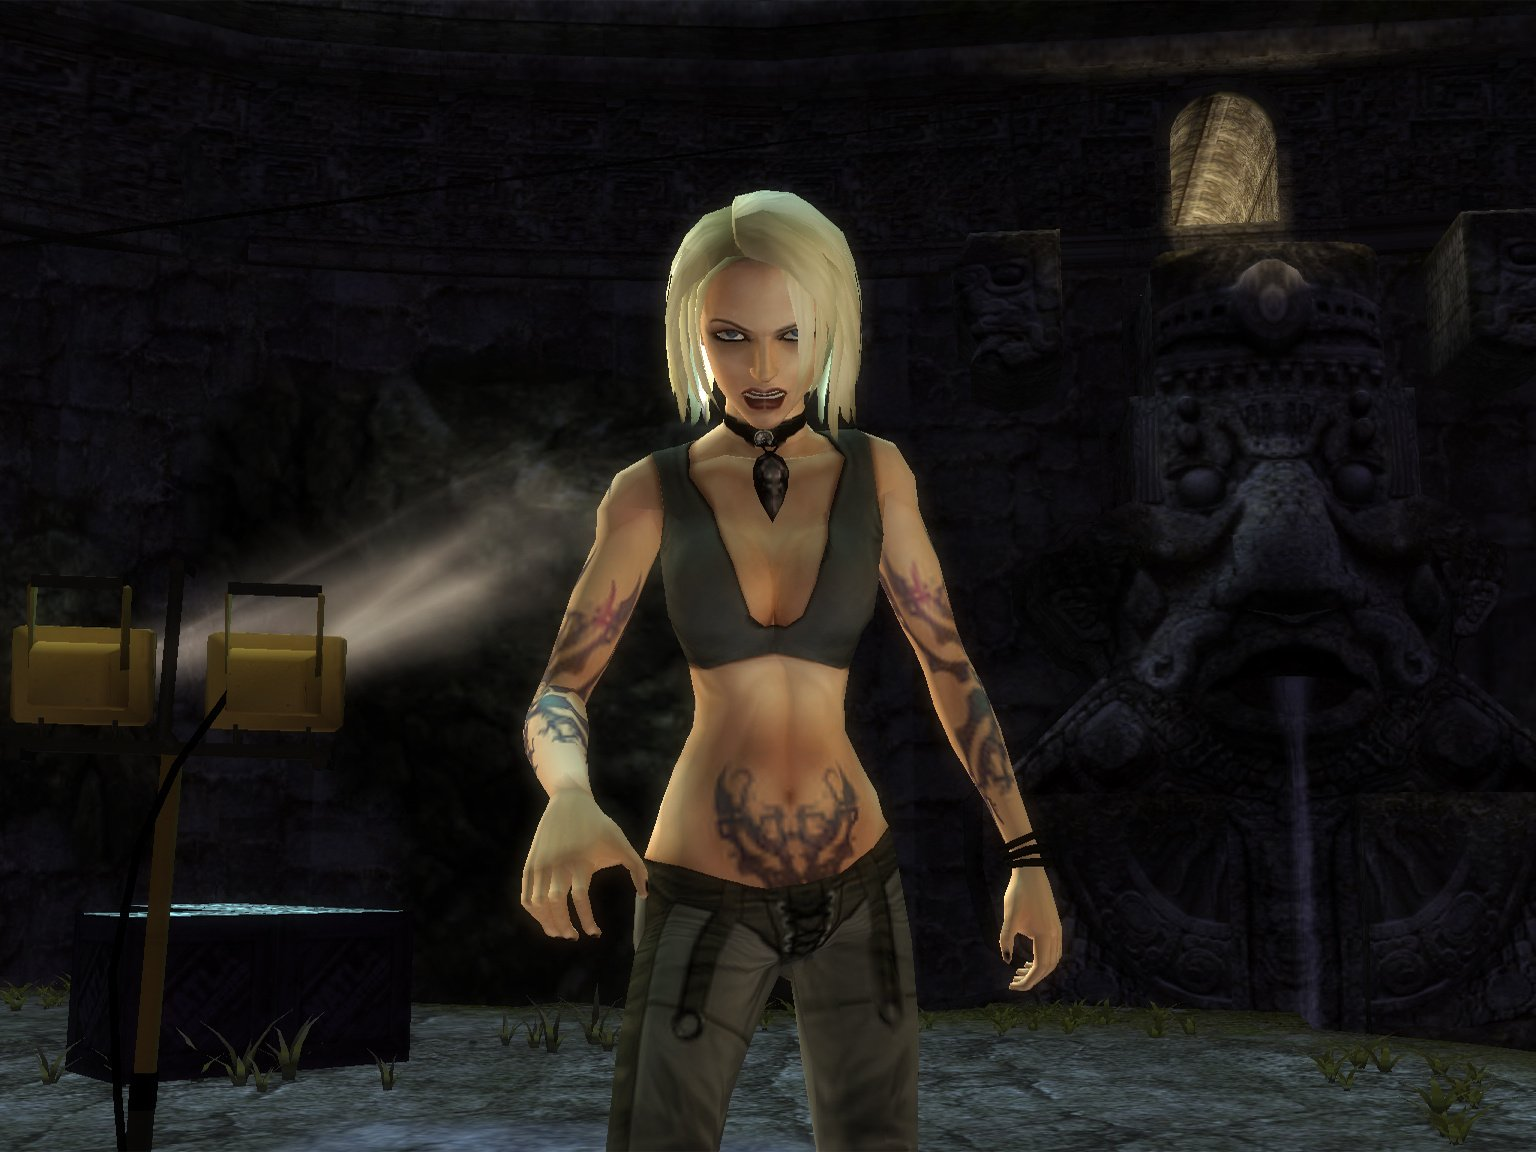 Tomb raider legend amanda mod sexy galleries